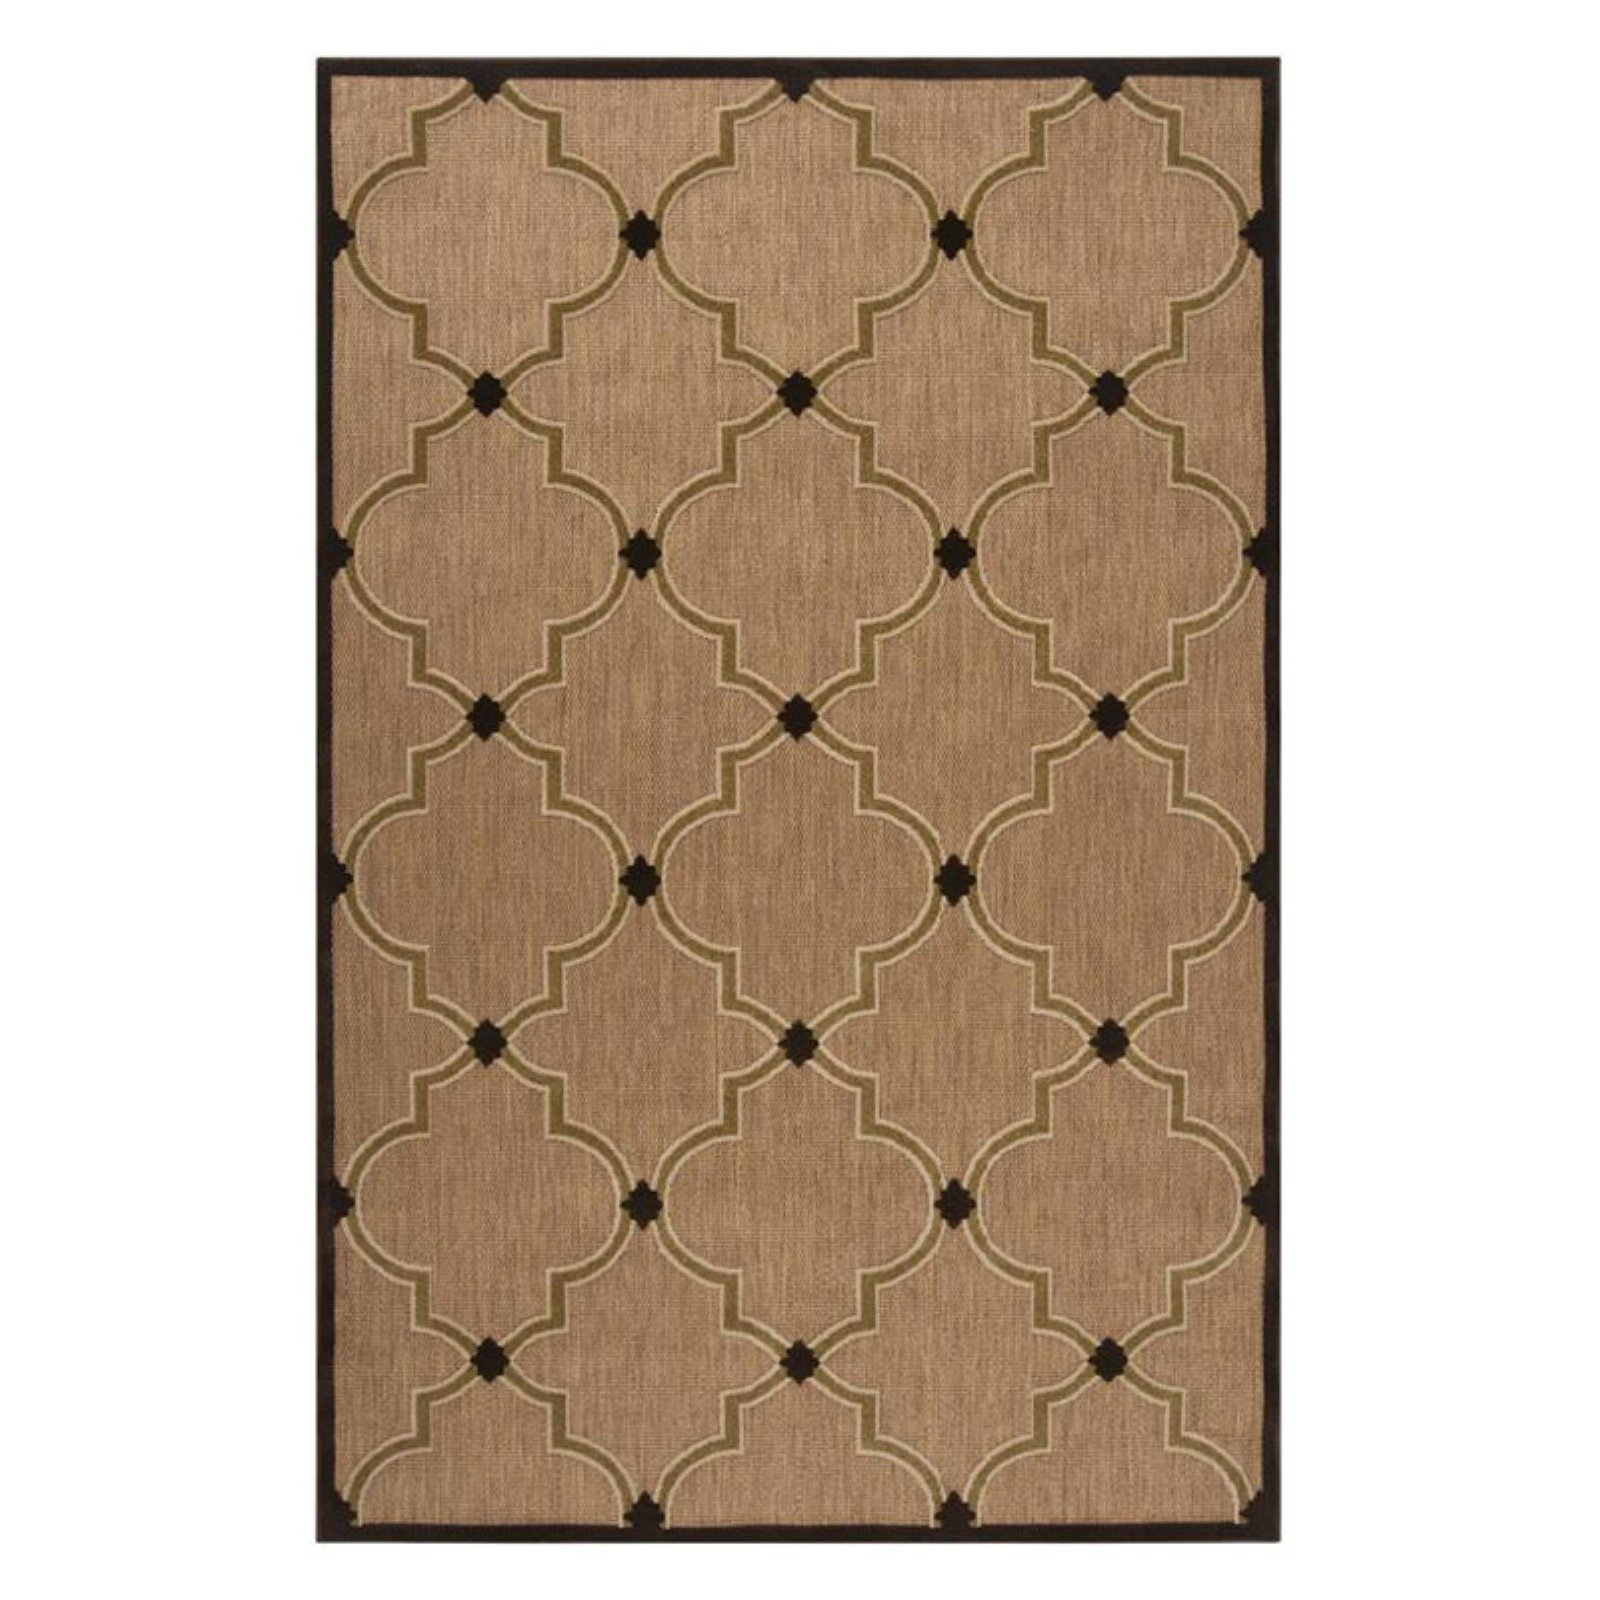 Surya Portera PRT-1048 Indoor Outdoor Area Rug